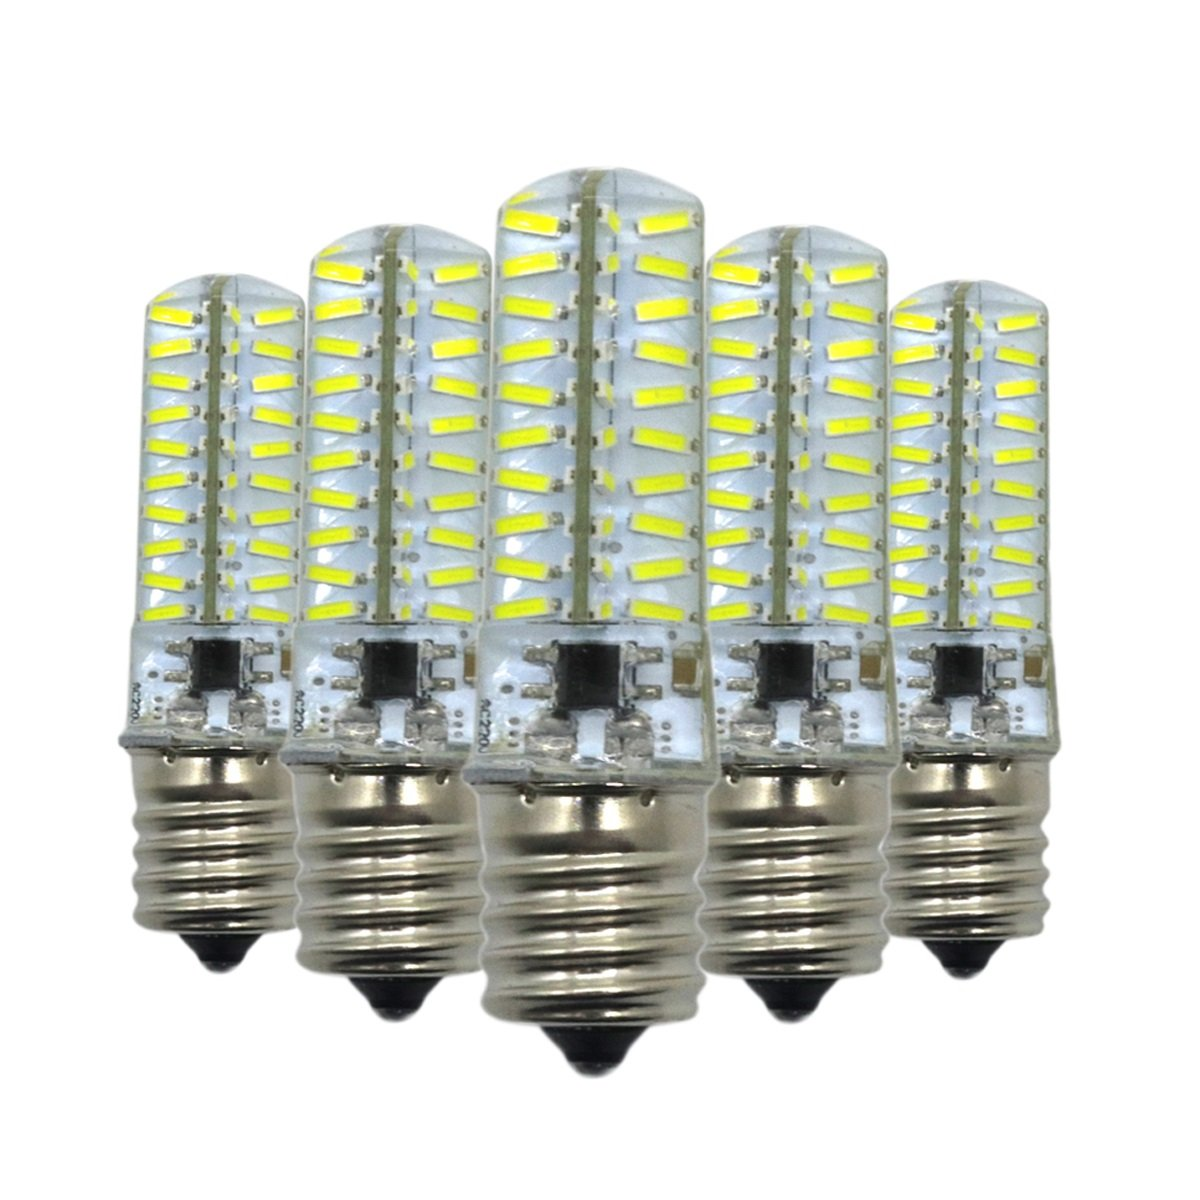 110V Cool White 110V Cool White LL Dimmable E17 LED Bulb 5W Bi-Pin 80×4014SMD Silicone Crystal Corn Bulb Super Bright LED Silicone Light Crystal 360° Beam Angle 110V 220V Pack of 5 (color   110V, Size   Cool White)